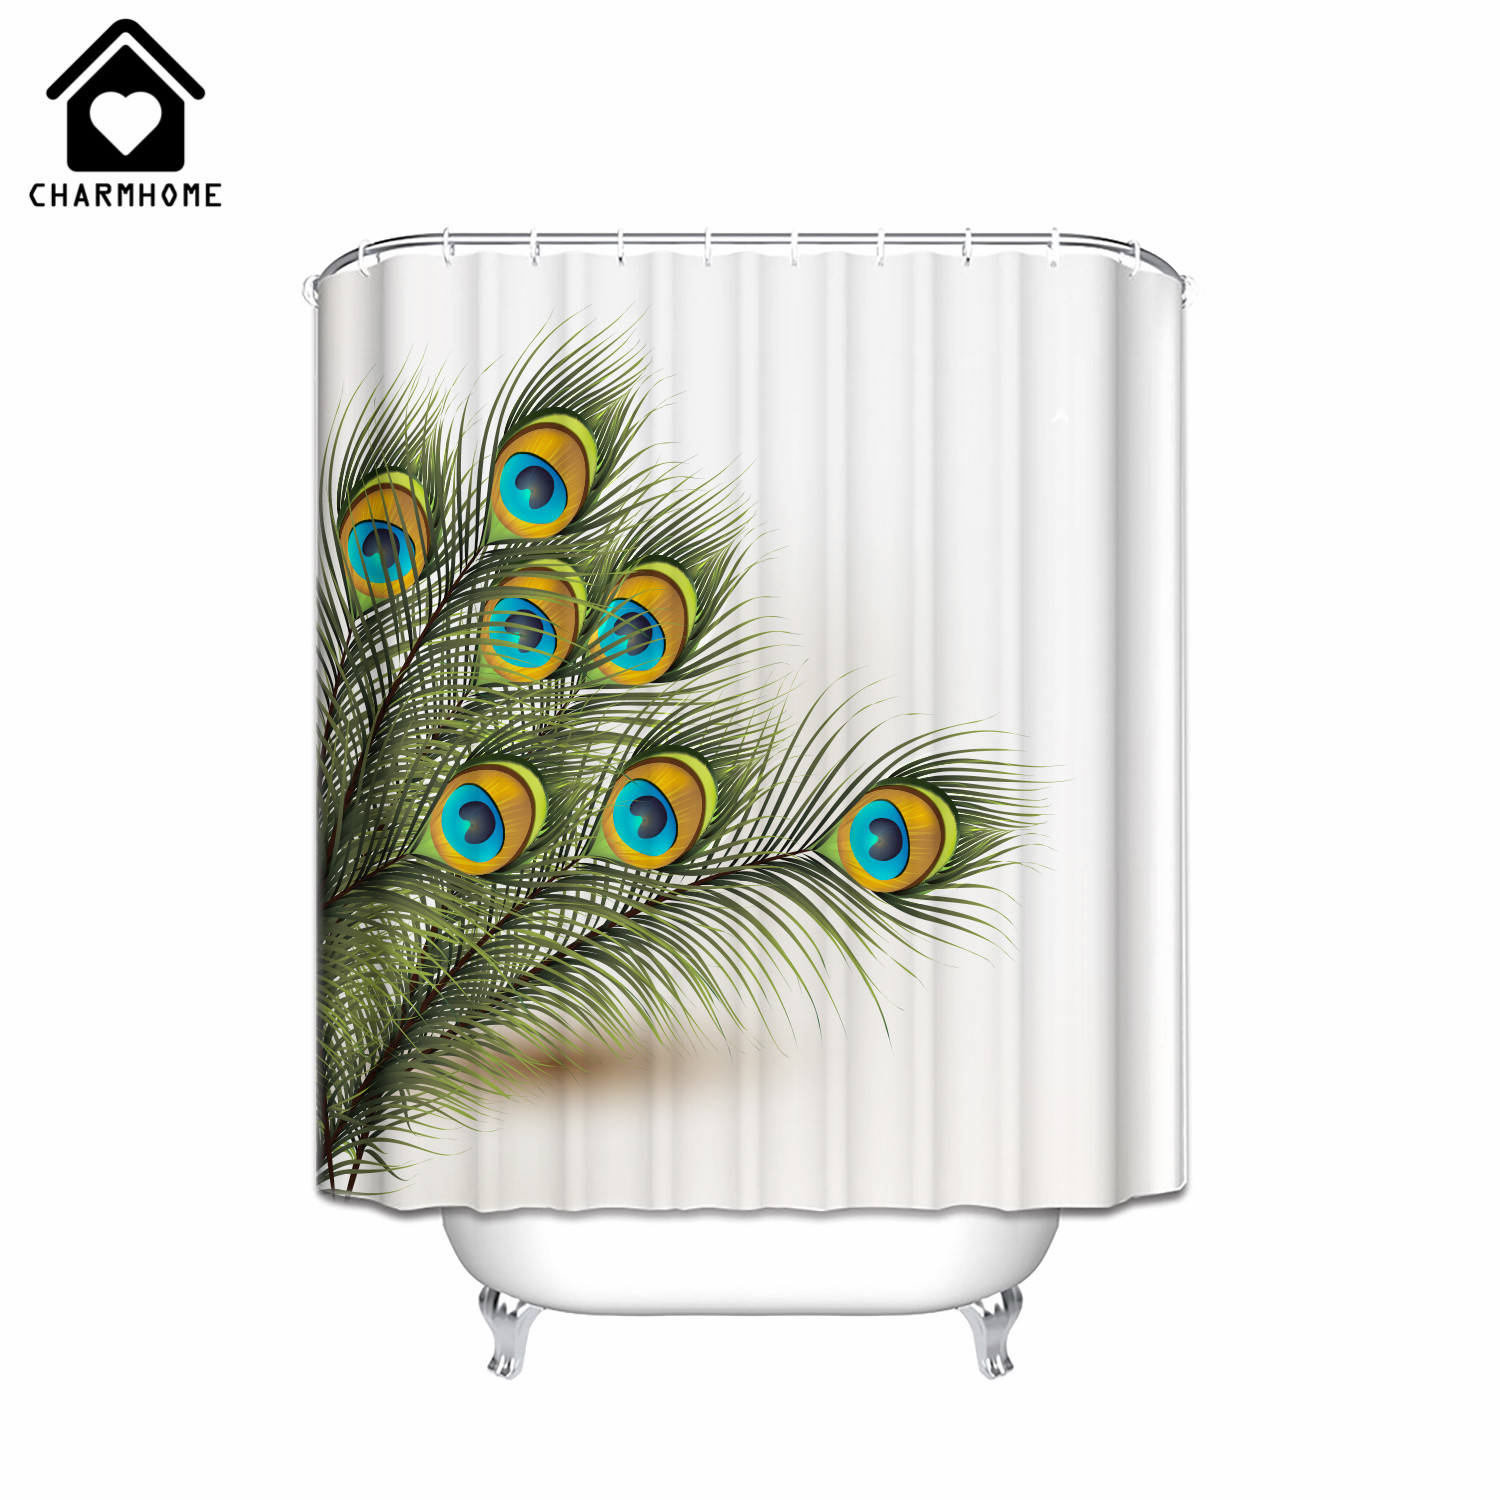 Peacock feather fabric shower curtain quot teal peacock feather quot green - Charmhome Custom Peacock Feather Printing Shower Curtain Waterproof Polyester Fabric Bath Curtain Bathroom Product With 12